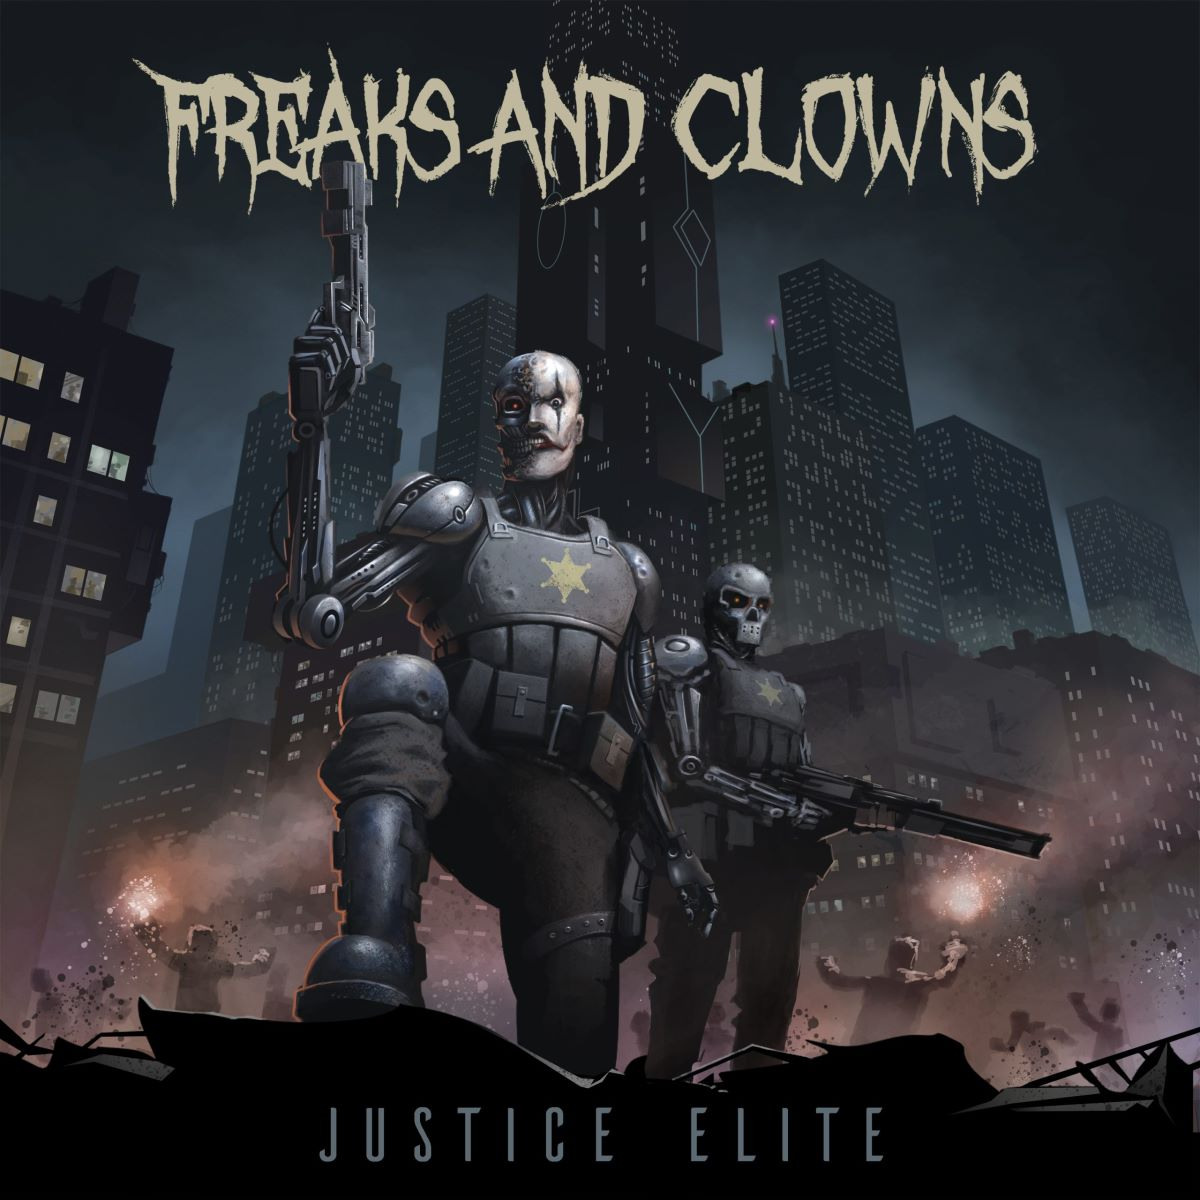 freaks and clowns - Justice Elite - album cover